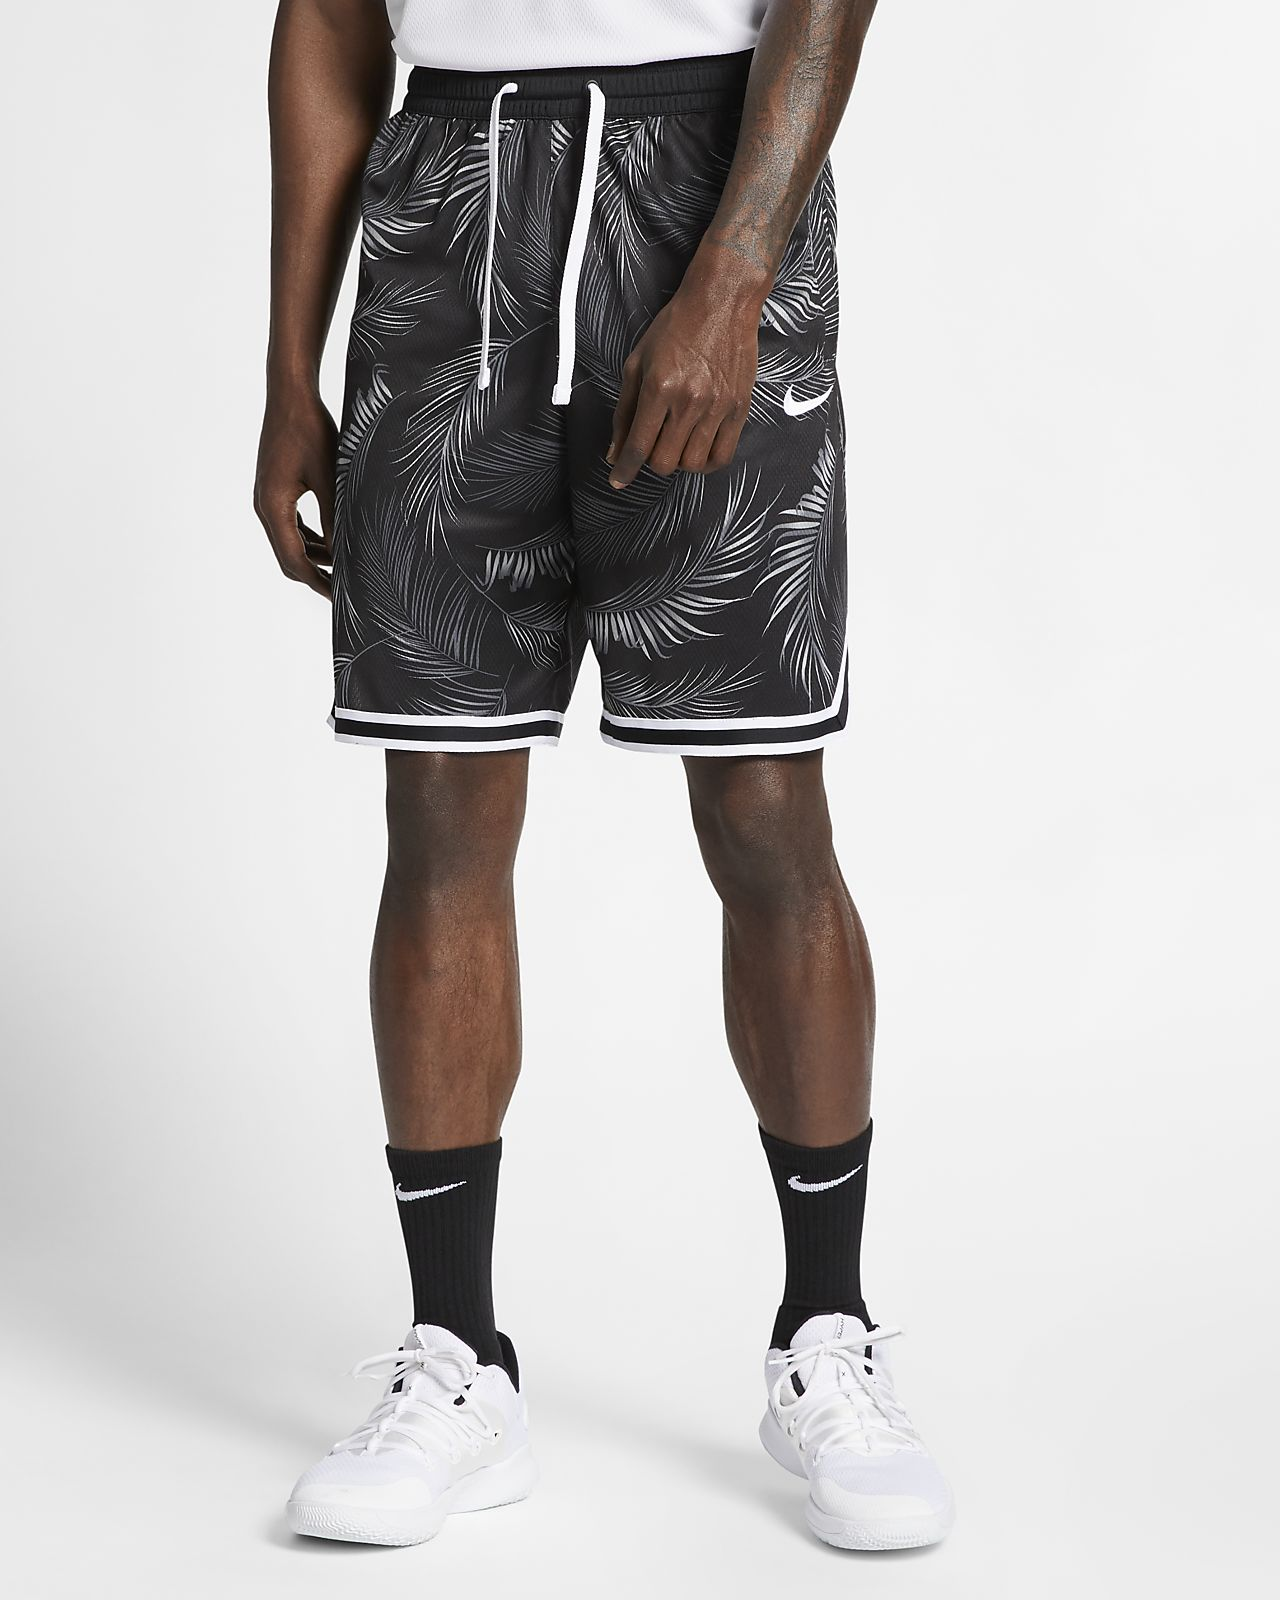 e8cba5876f68d9 Nike Dri-FIT DNA Men s Basketball Shorts. Nike.com